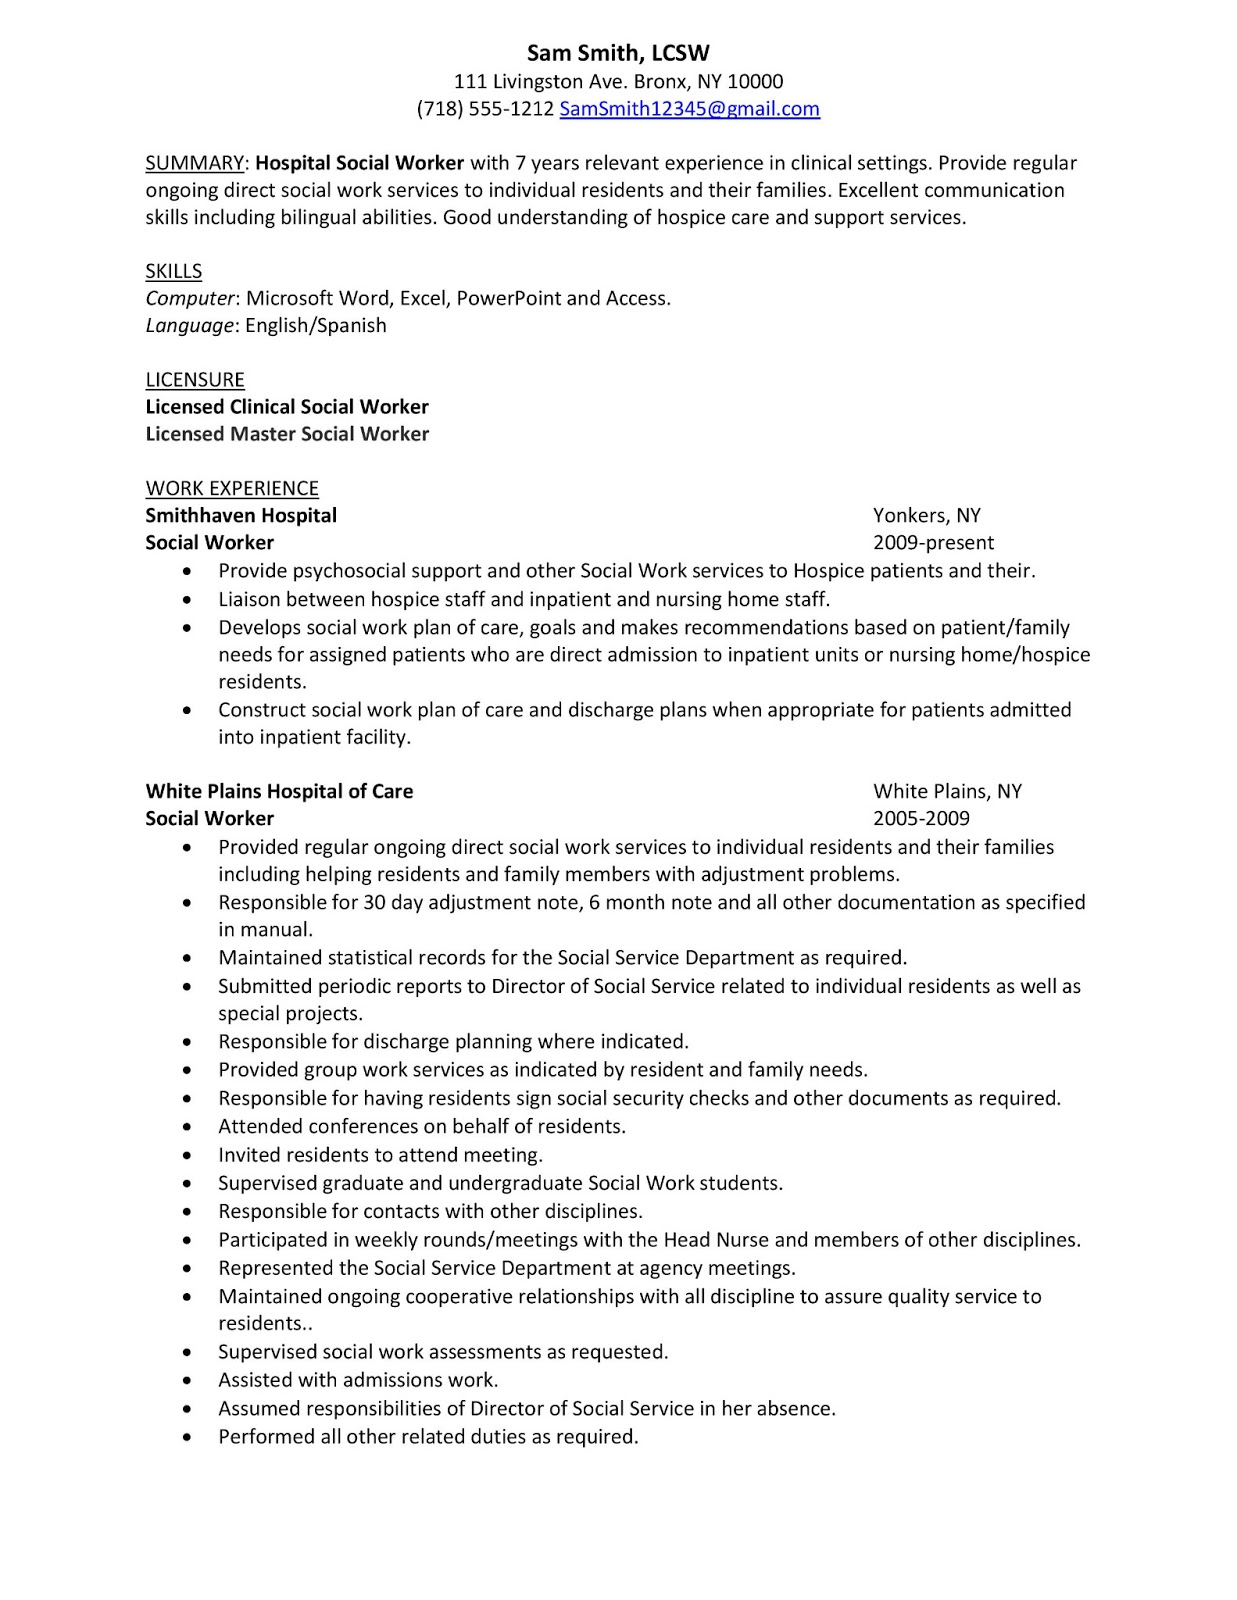 sample resume hospital social worker - Social Work Objective Resume